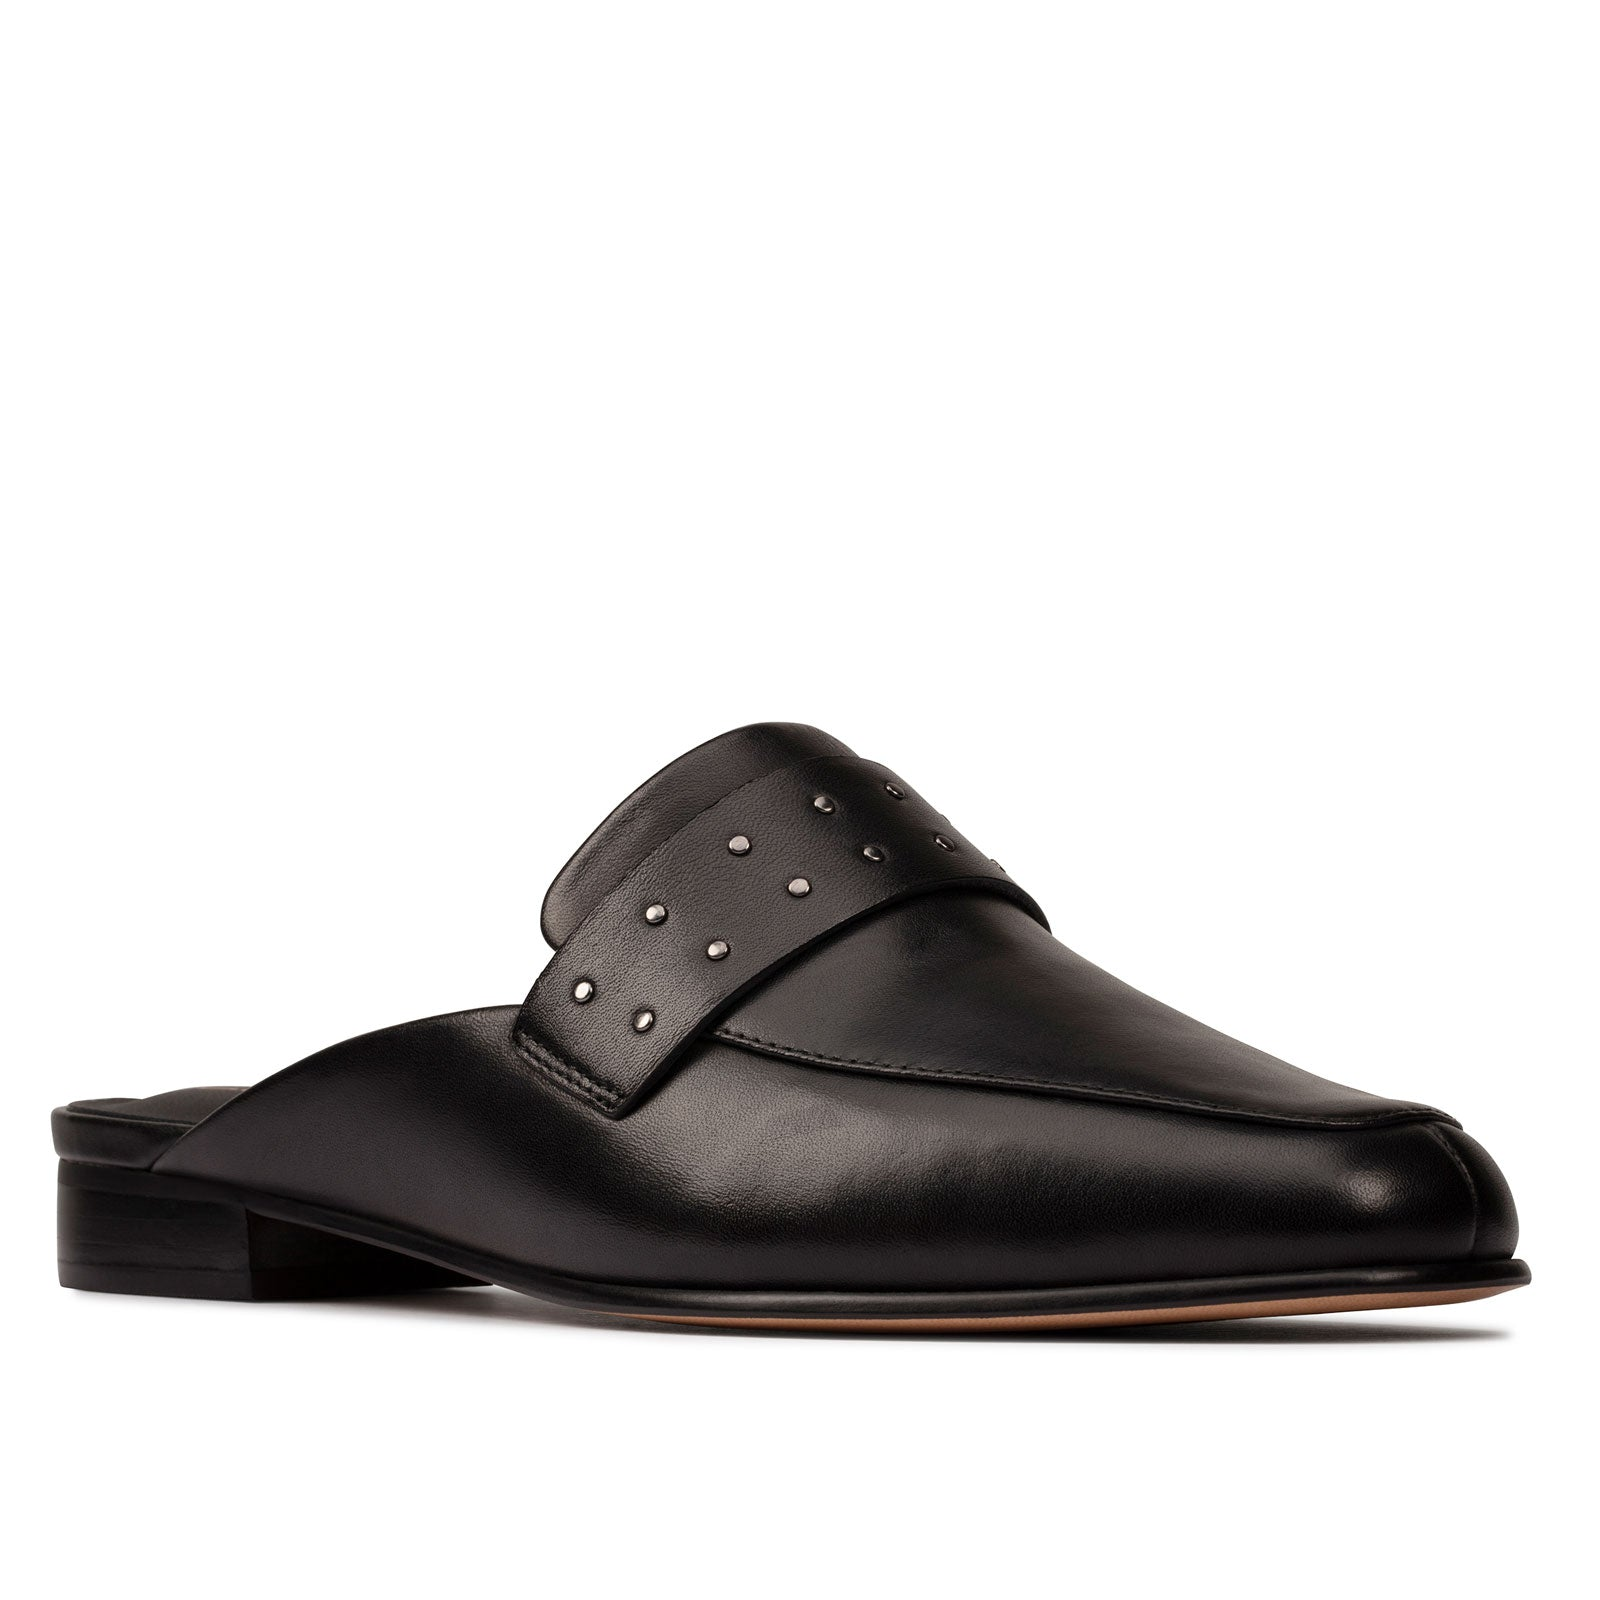 Clarks Pure Mule 50382 (Black Leather)